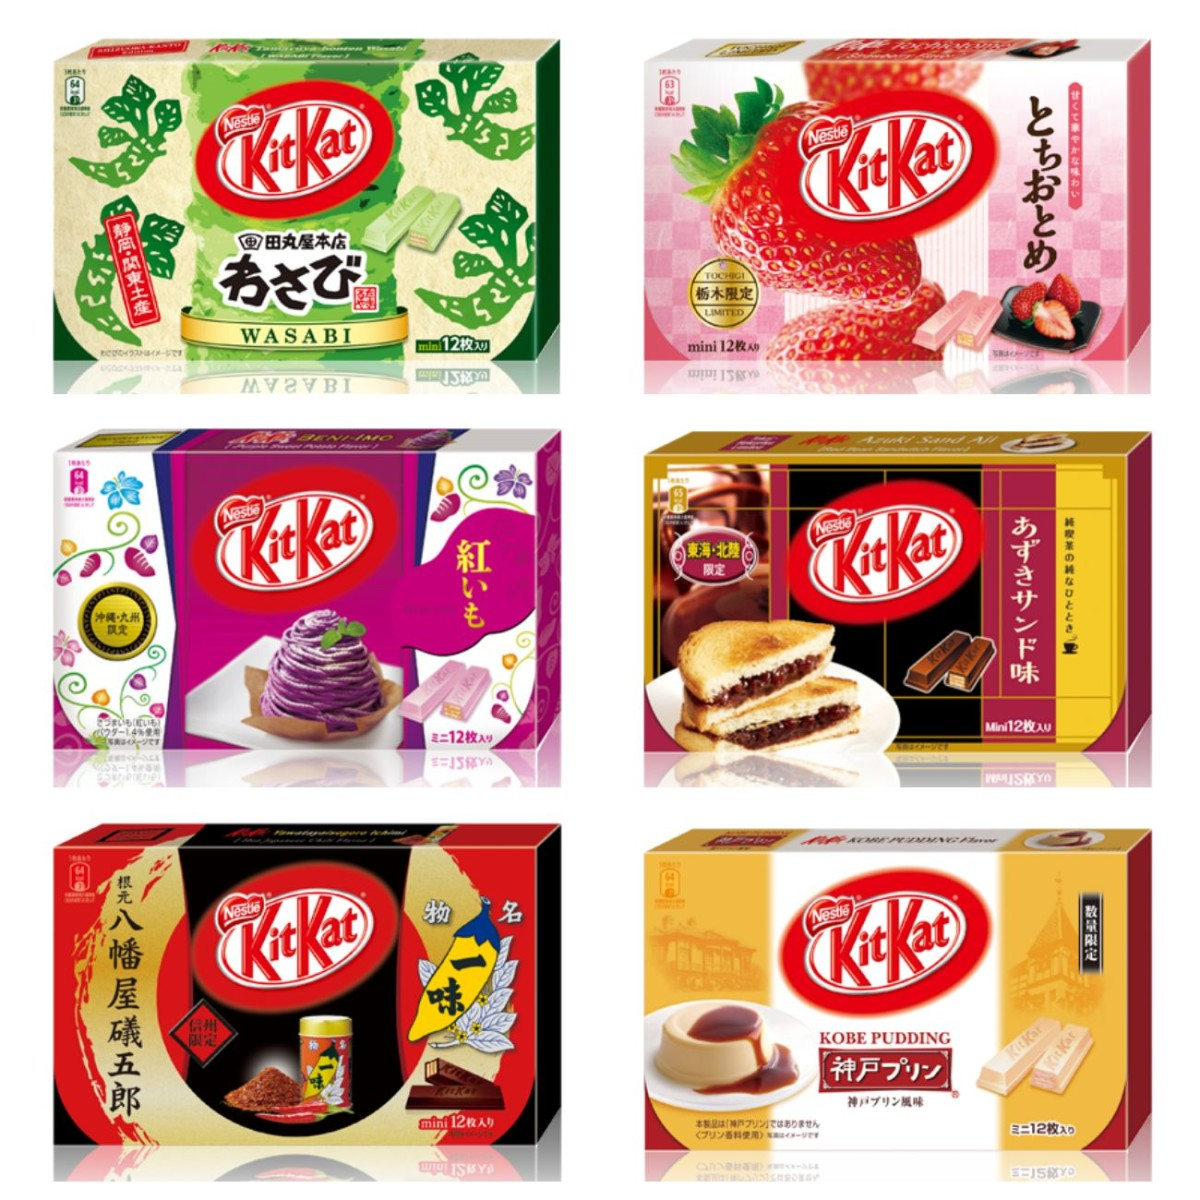 There are more than 200 different flavors of kit kat in japan there are more than 200 different flavors of kit kat in japan heres why food republic voltagebd Gallery